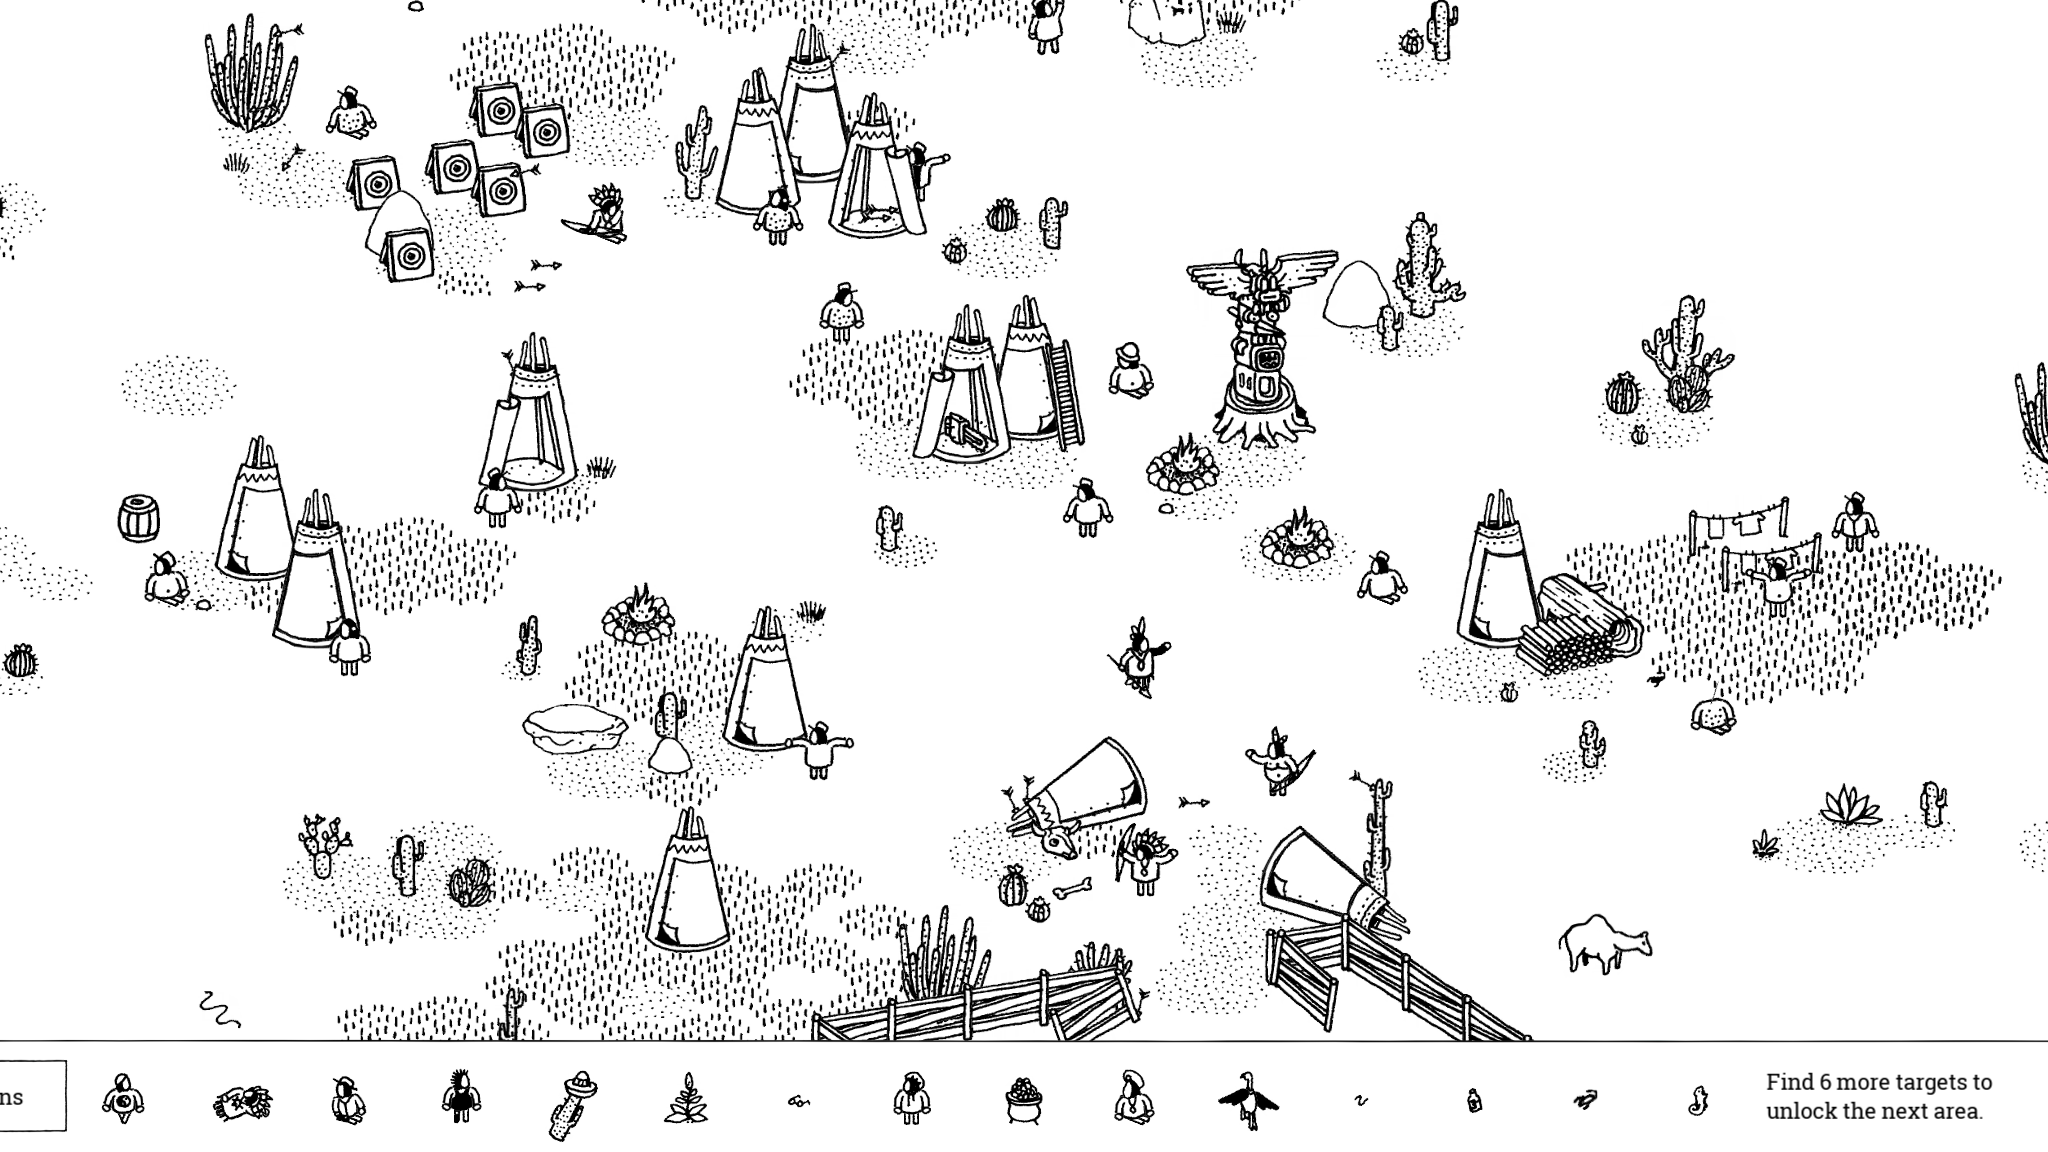 Players need to find all kinds of targets from hidden folks to tiny objects.